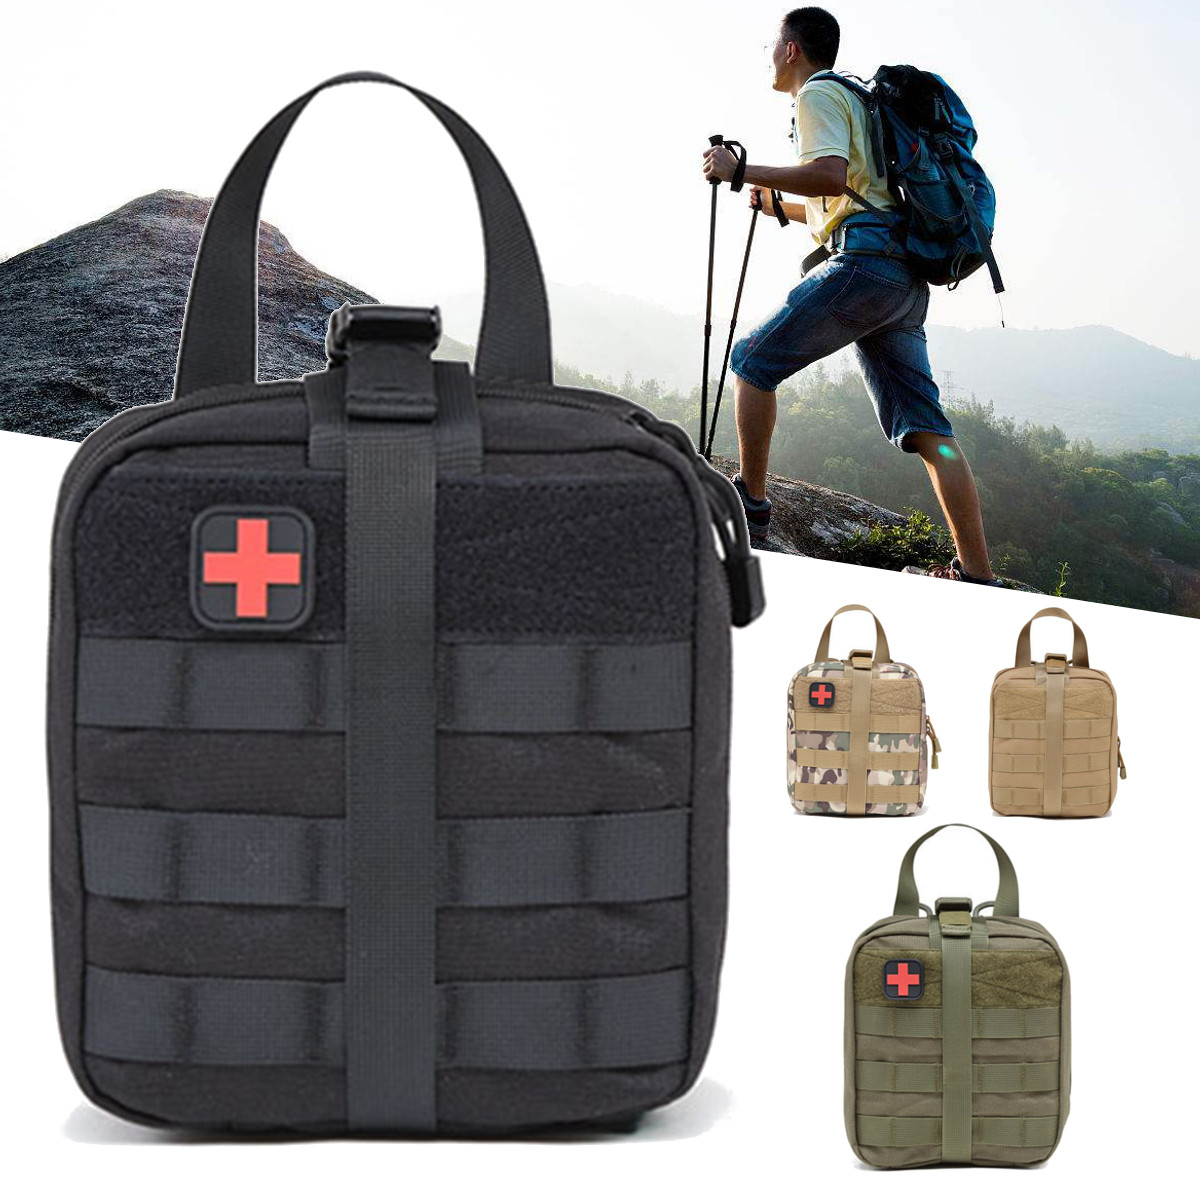 Tactical First Aid Kit Pouch Survival Medical Bag Portable Pouch Emergency Outdoor Travel Mountaineering Climbing Lifesaving Bag